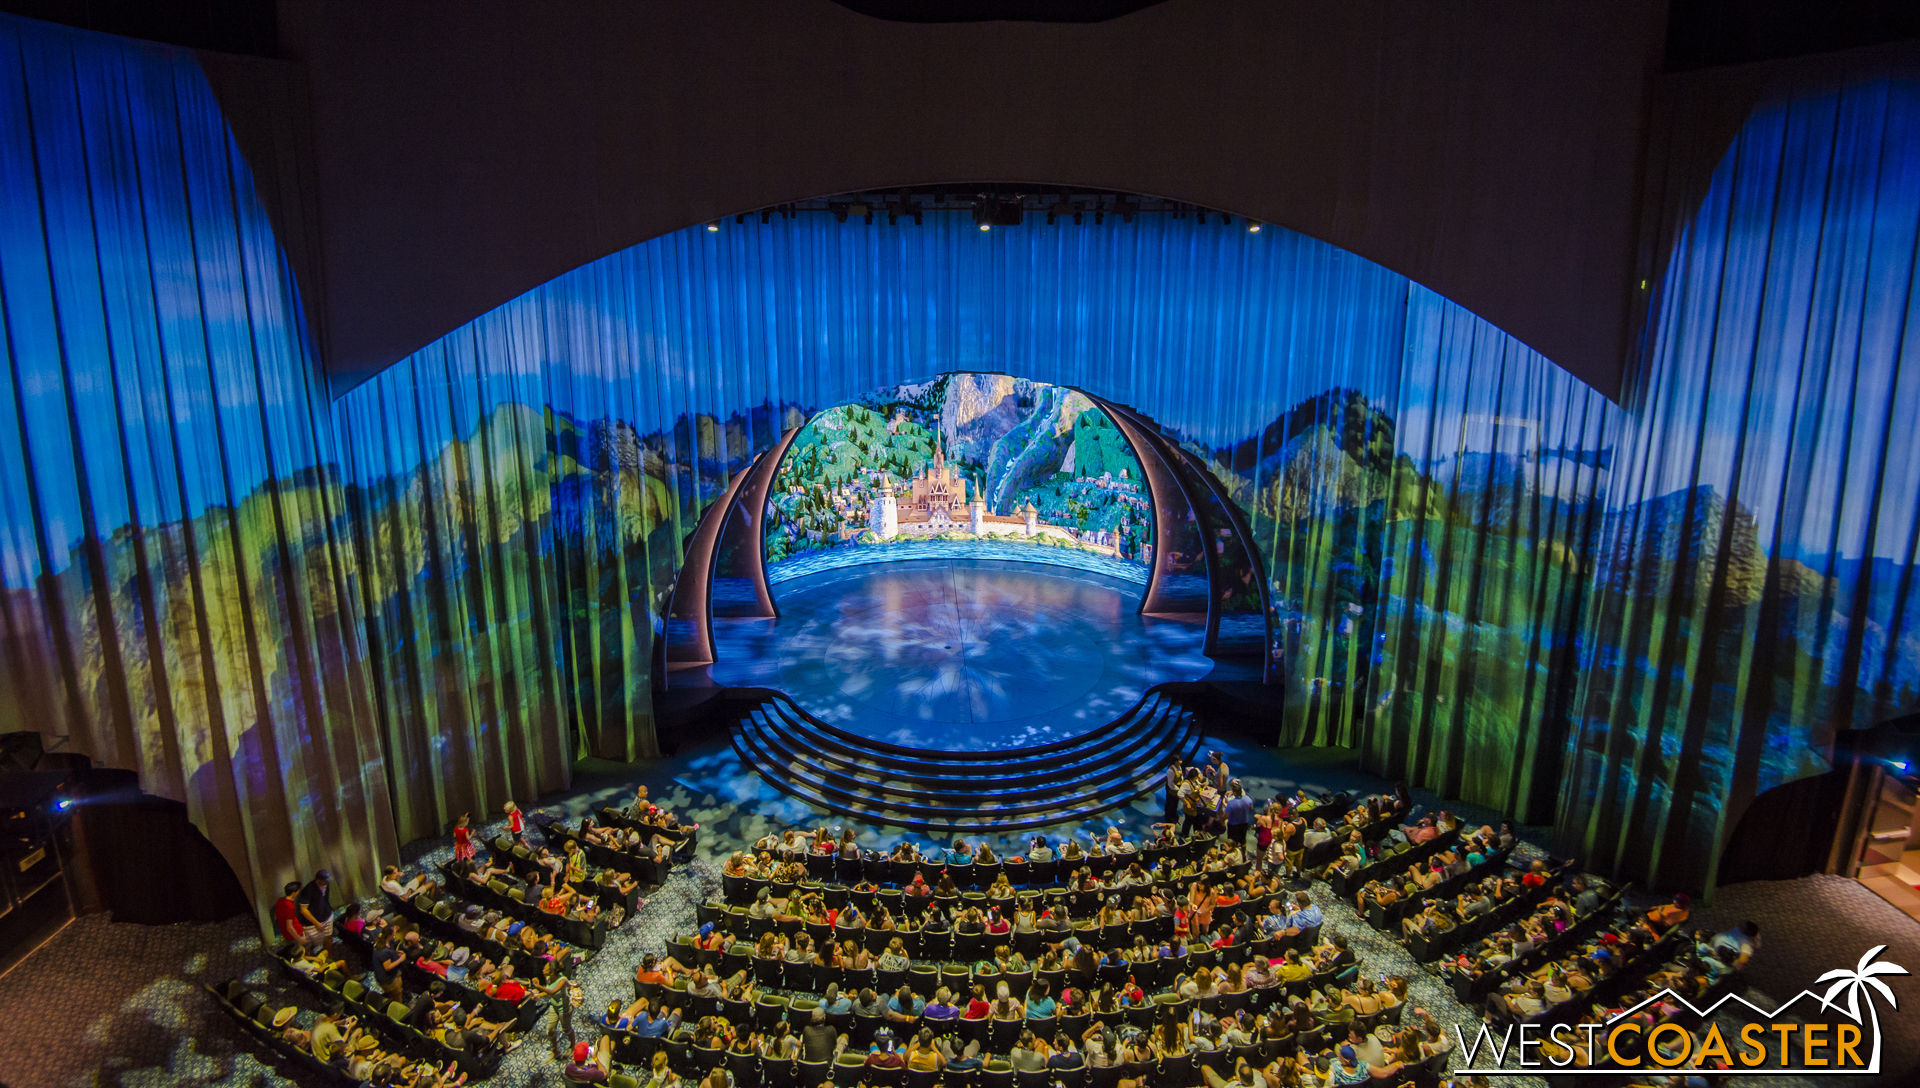 Inside, guests are greeted by a beautiful projected backdrop.